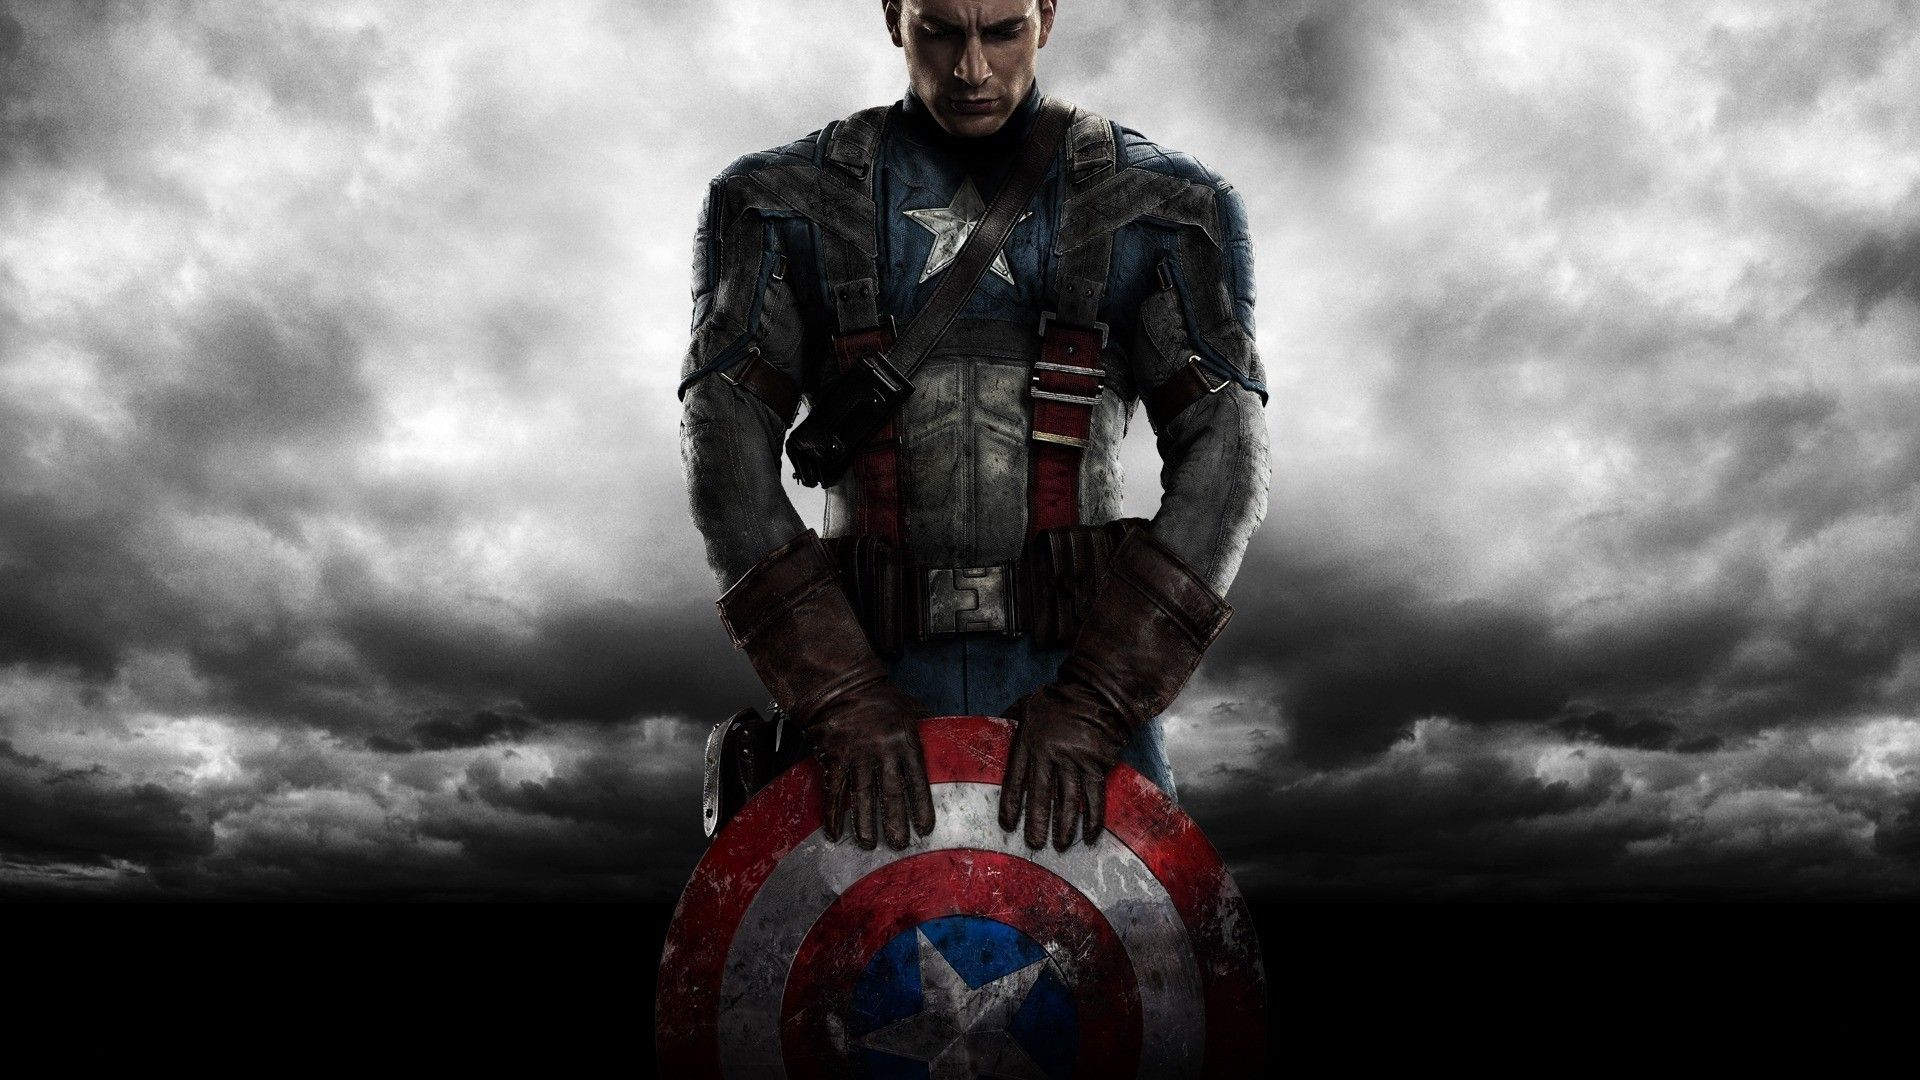 Captain America Superhero Wallpaper Captain America Wallpaper Captain America Movie Captain America